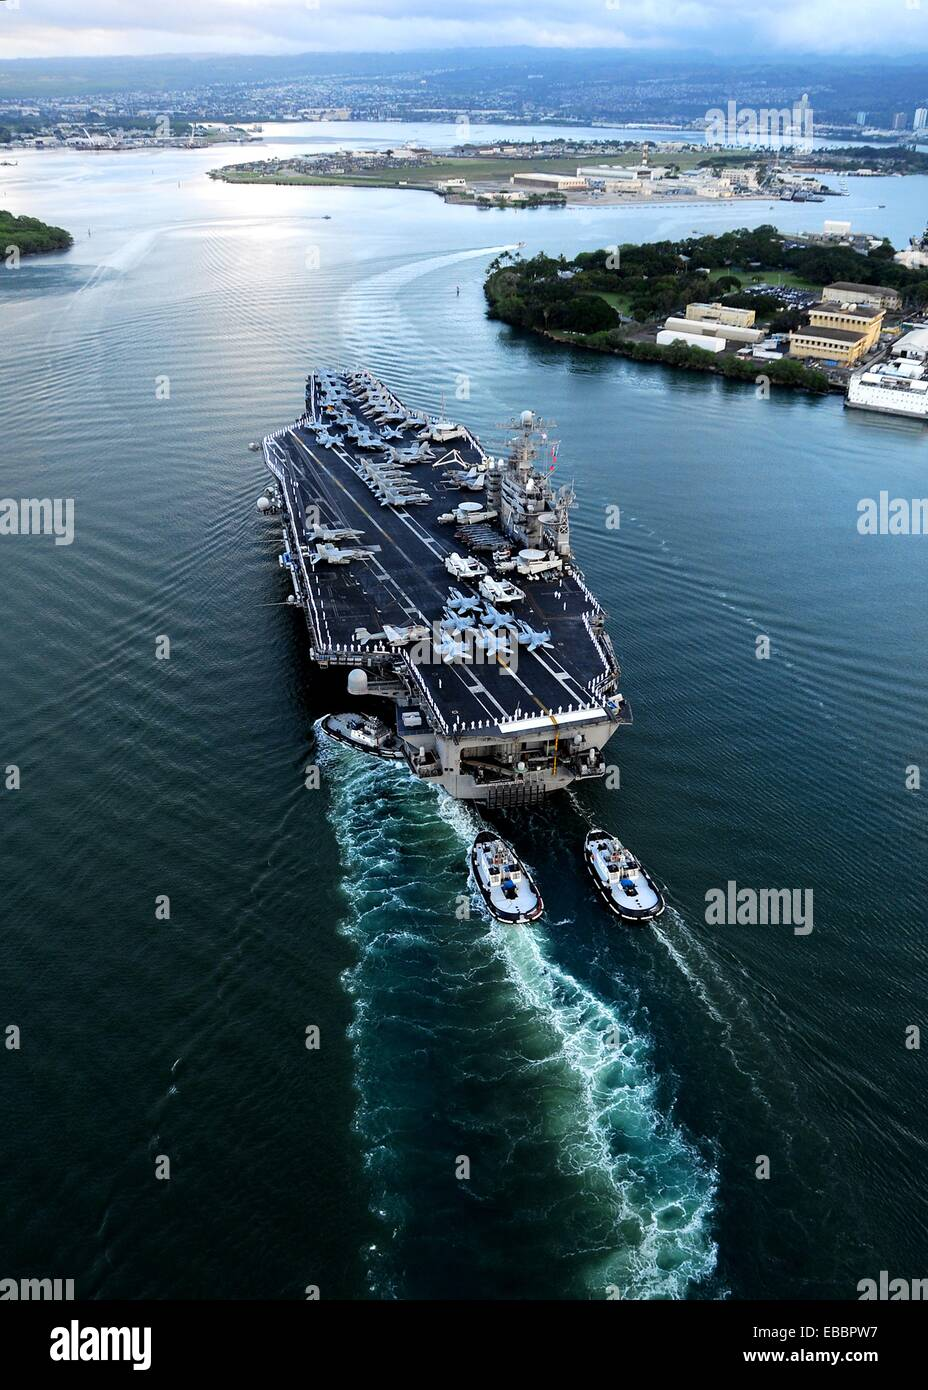 110310-N-CQ682-278 PEARL HARBOR March 10, 2011 The aircraft carrier USS Abraham Lincoln CVN 72 arrives in Pearl - Stock Image